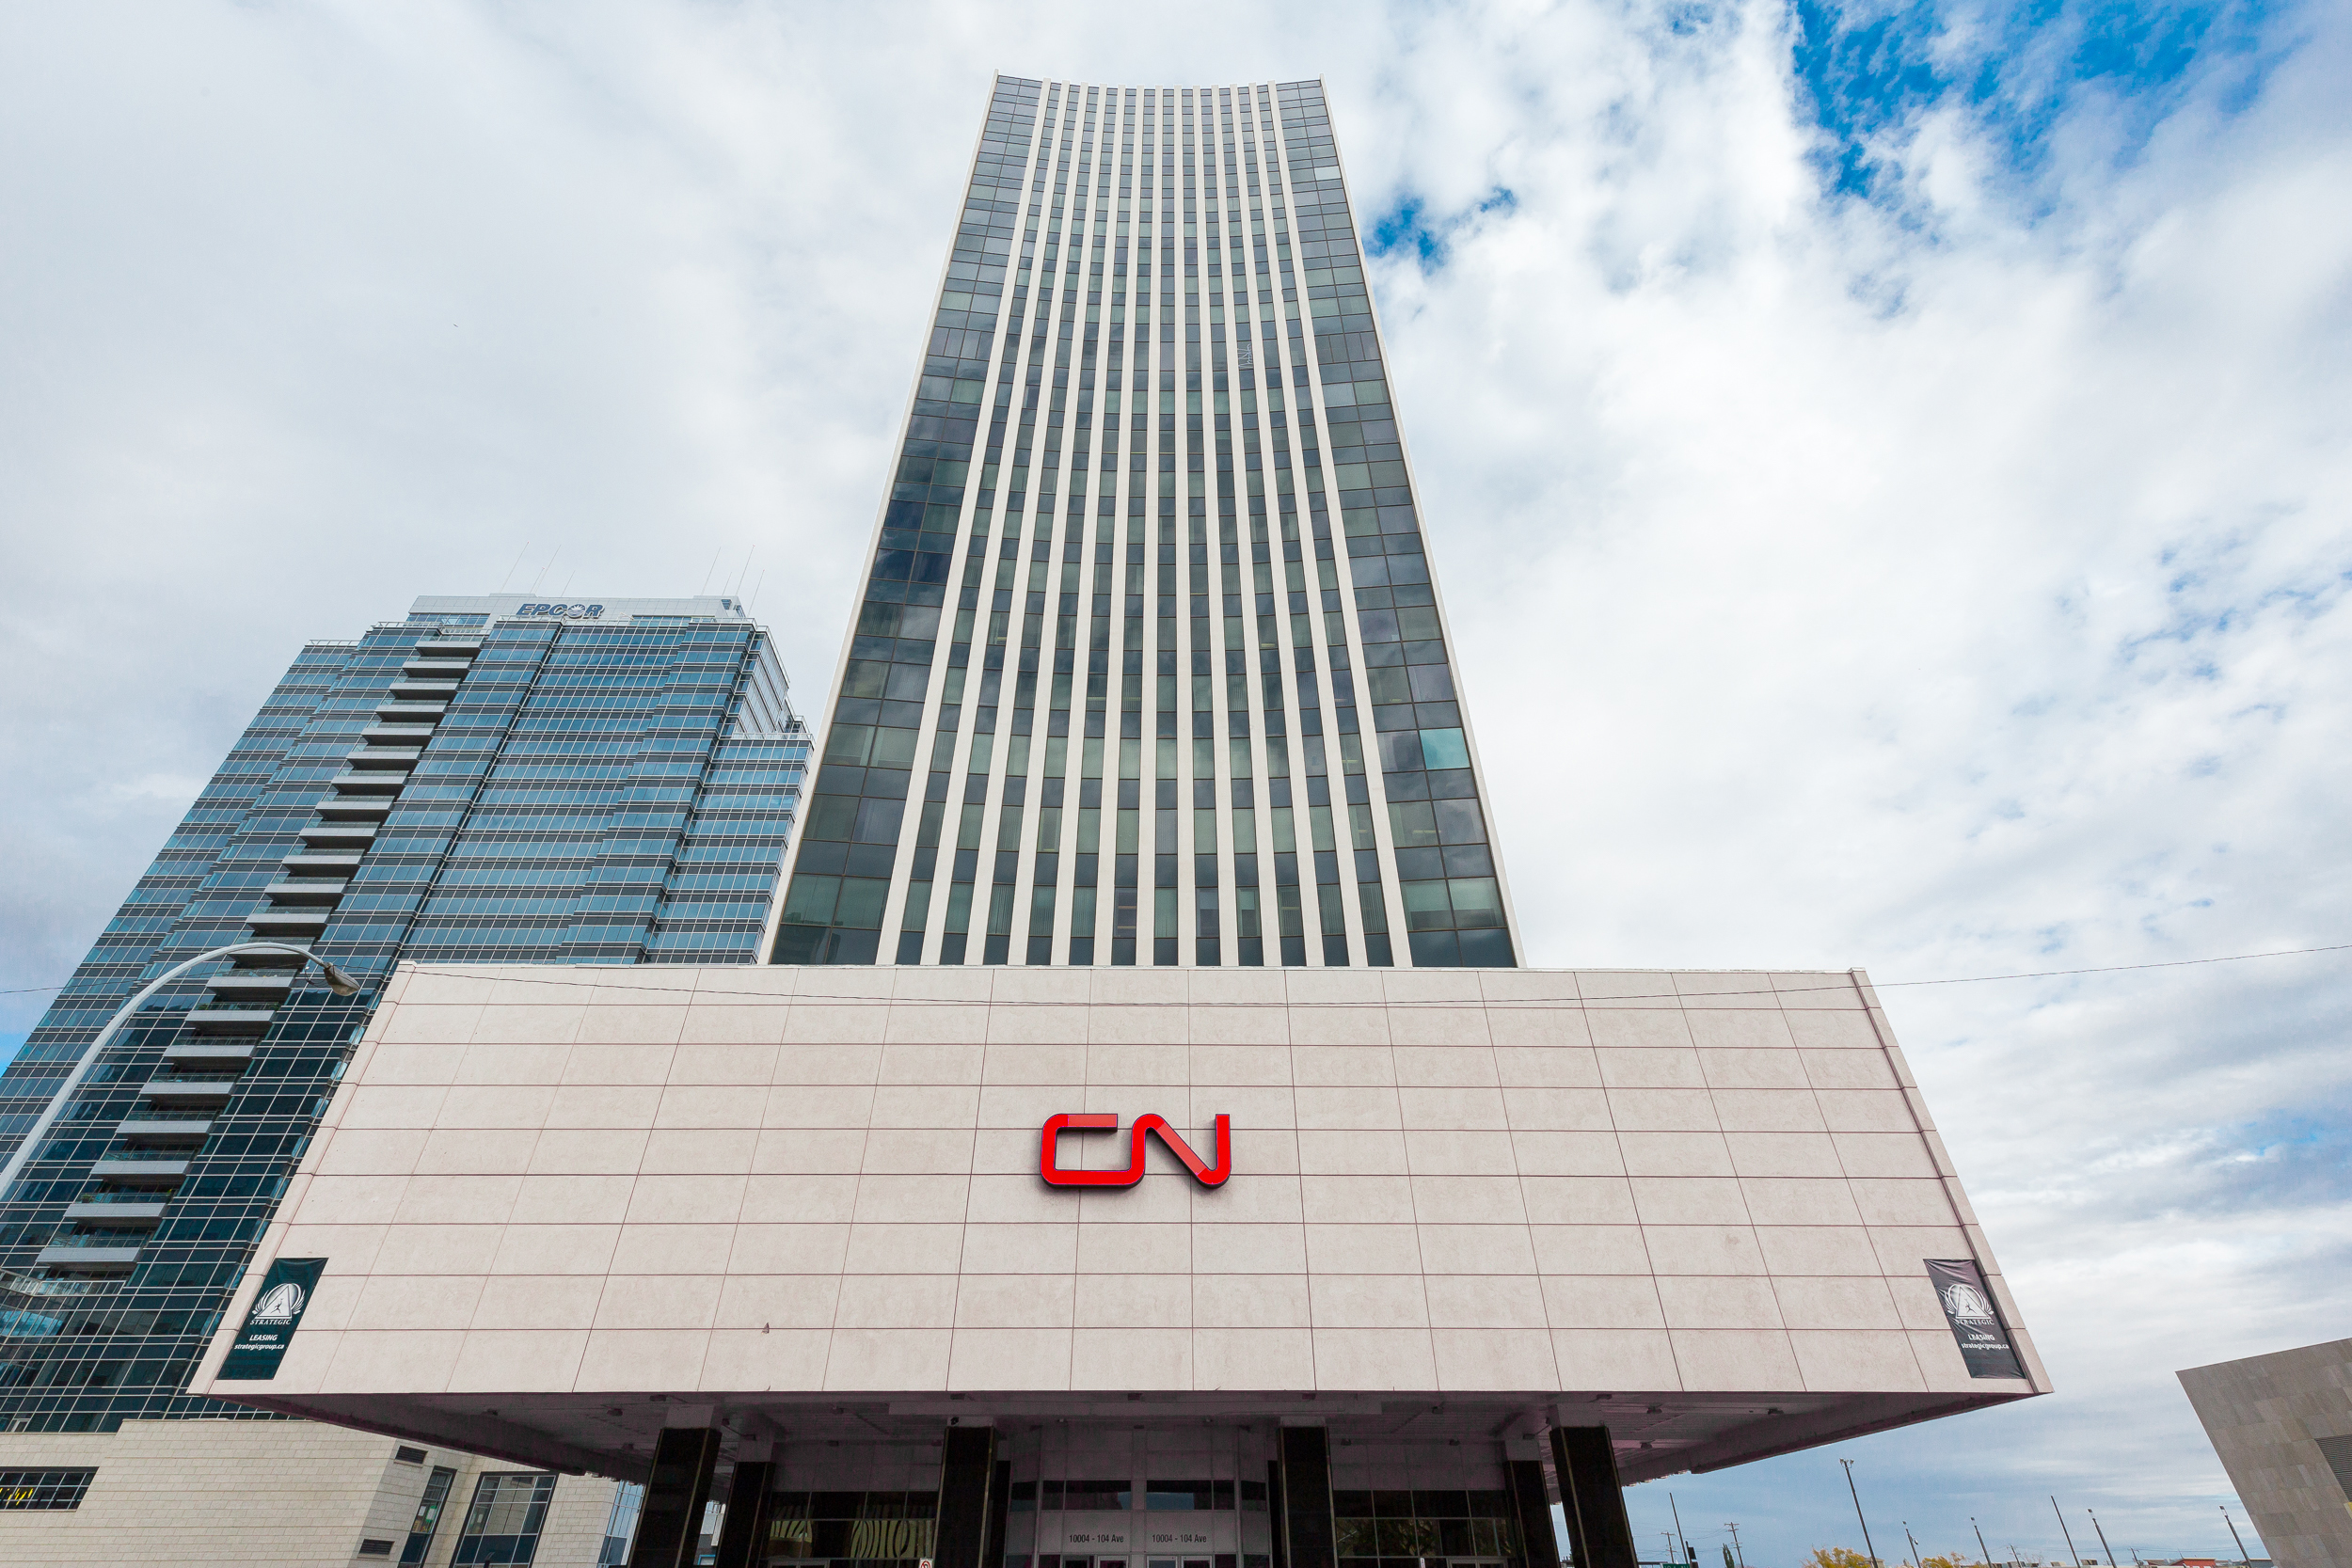 1100 CN Tower 10004 104 Avenue NW